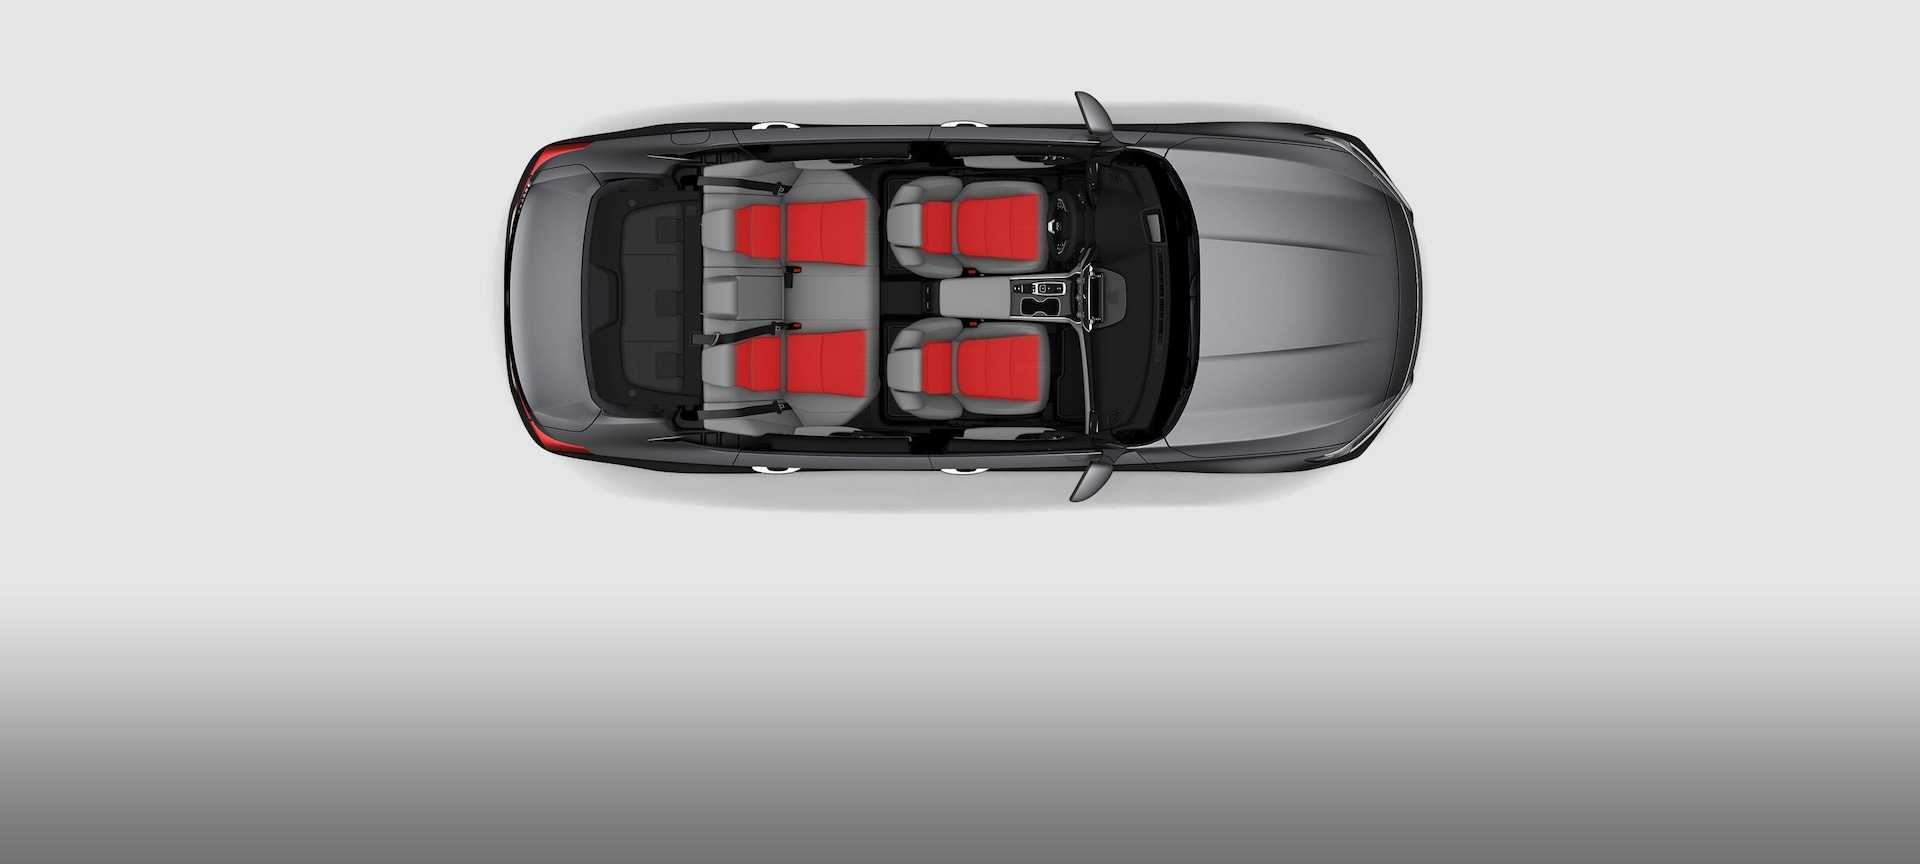 Overhead of interior of 2019 Honda Accord Touring 2.0T with graphic illustration of ventilated and heated front seats, and heated rear outboard seats.